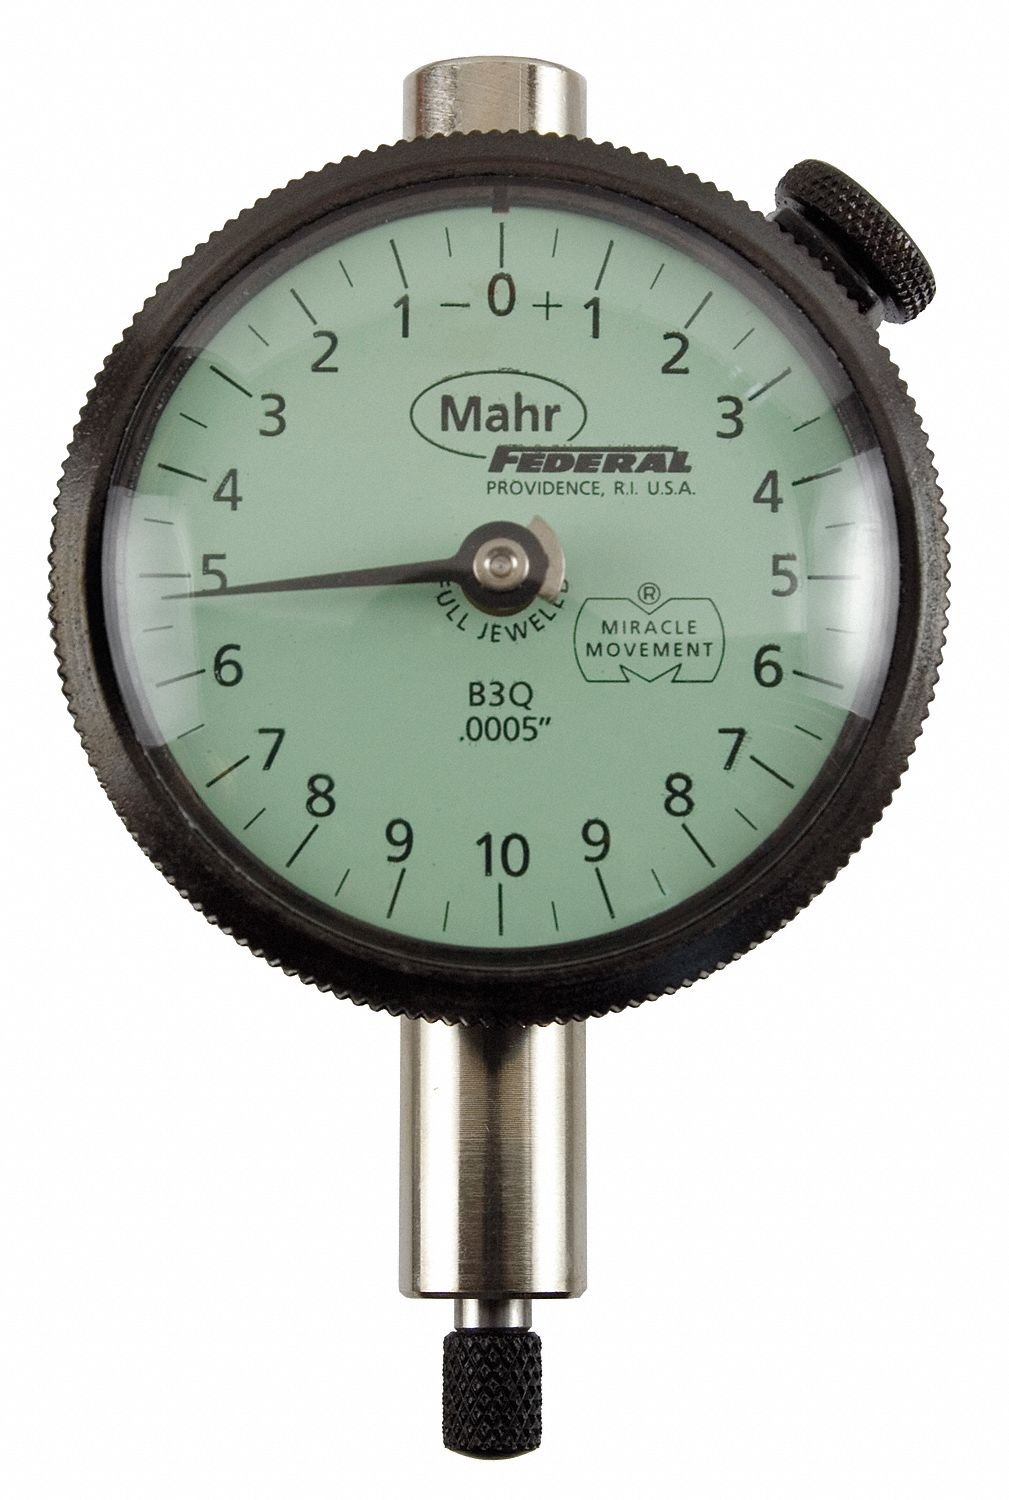 Federal Indicator Travel Products : Mahr federal inc balanced reading dial indicator agd